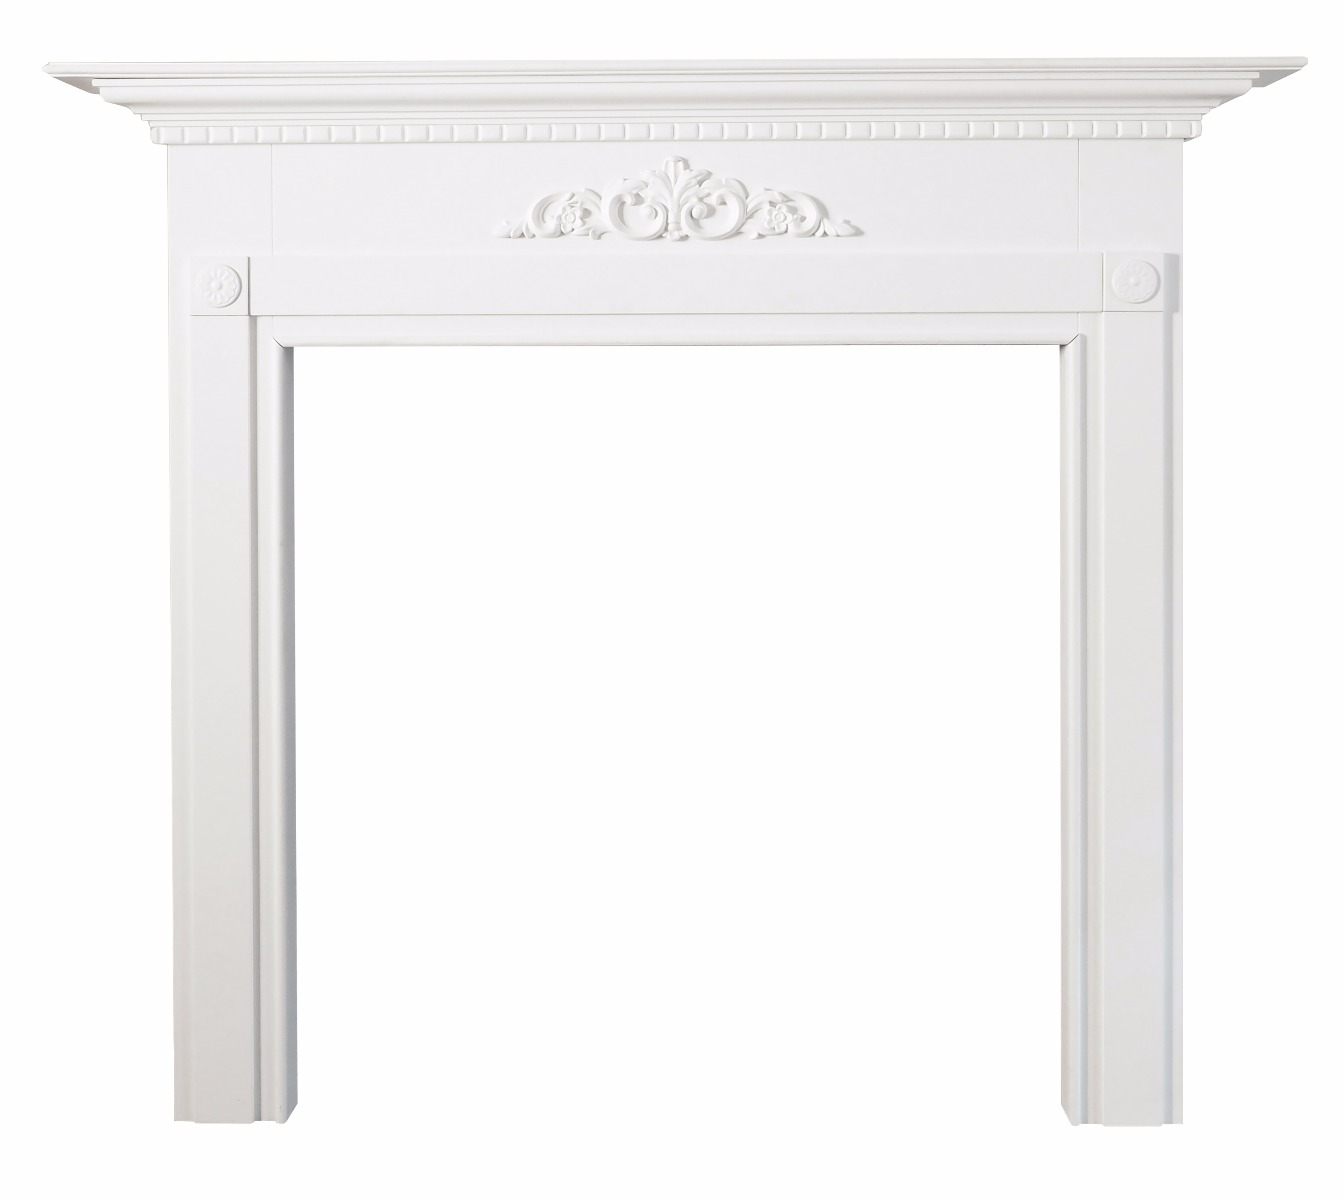 Montreux White Mantel by Early Settler, a Fireplace Mantels & Surrounds for sale on Style Sourcebook